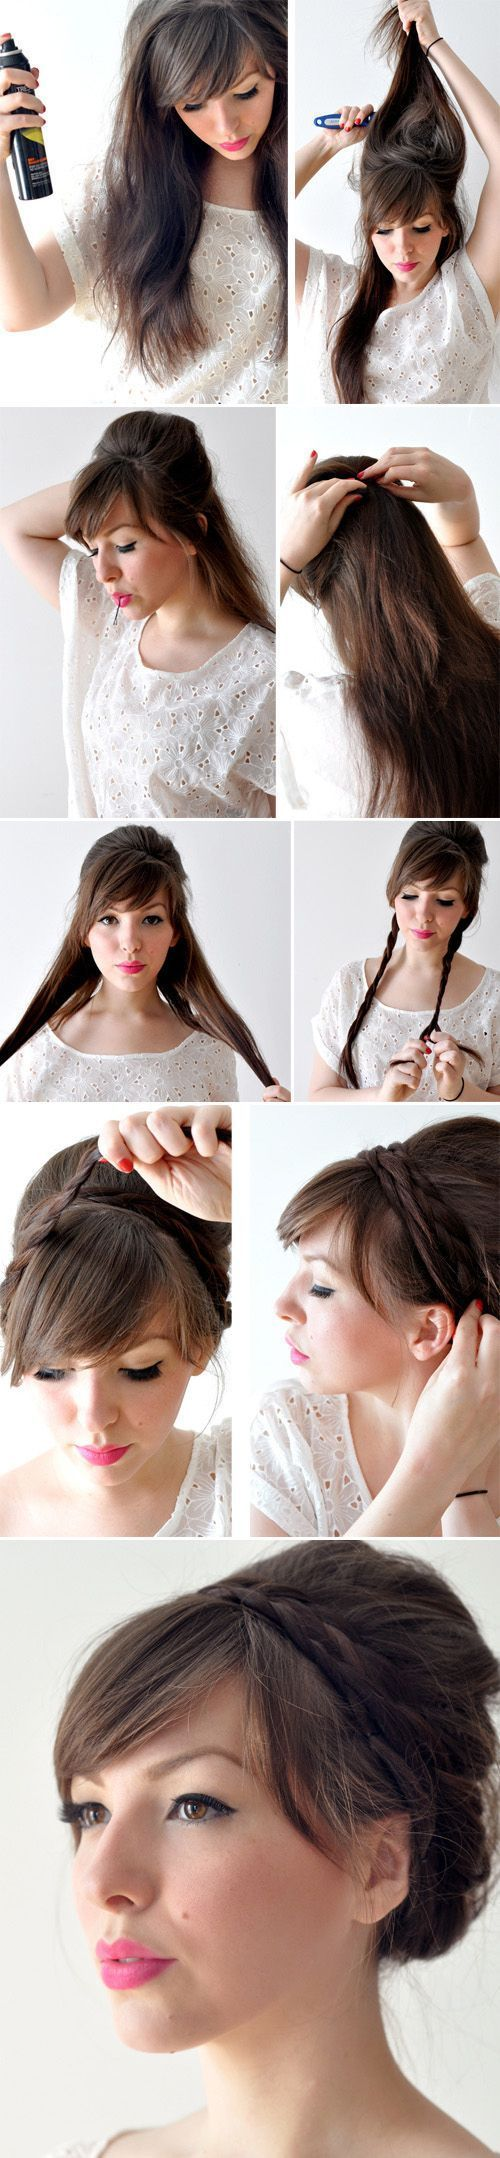 Pin by kristy upchurch on hair pinterest simple updo updo and